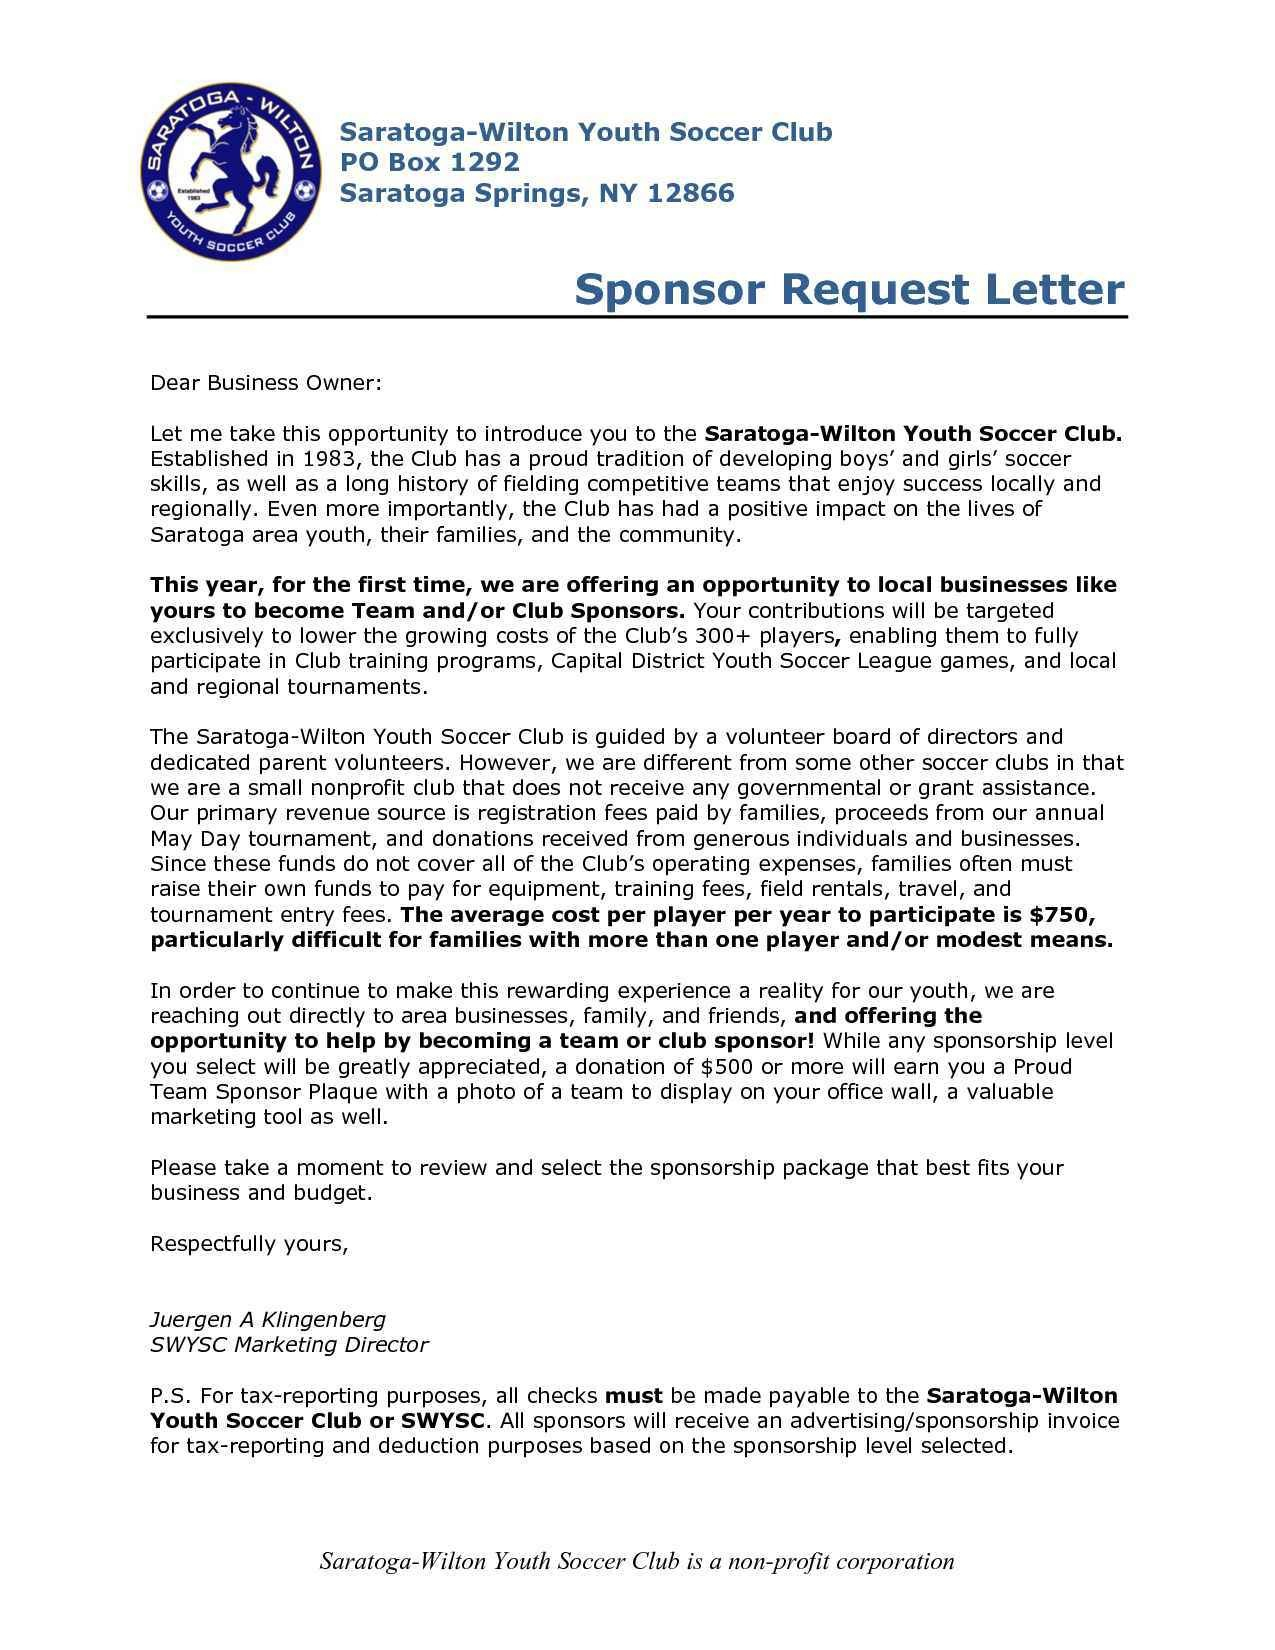 Donation Letter Template for Sports - Sponsorship Letter for Sports Inspirationa Sample Letter asking for